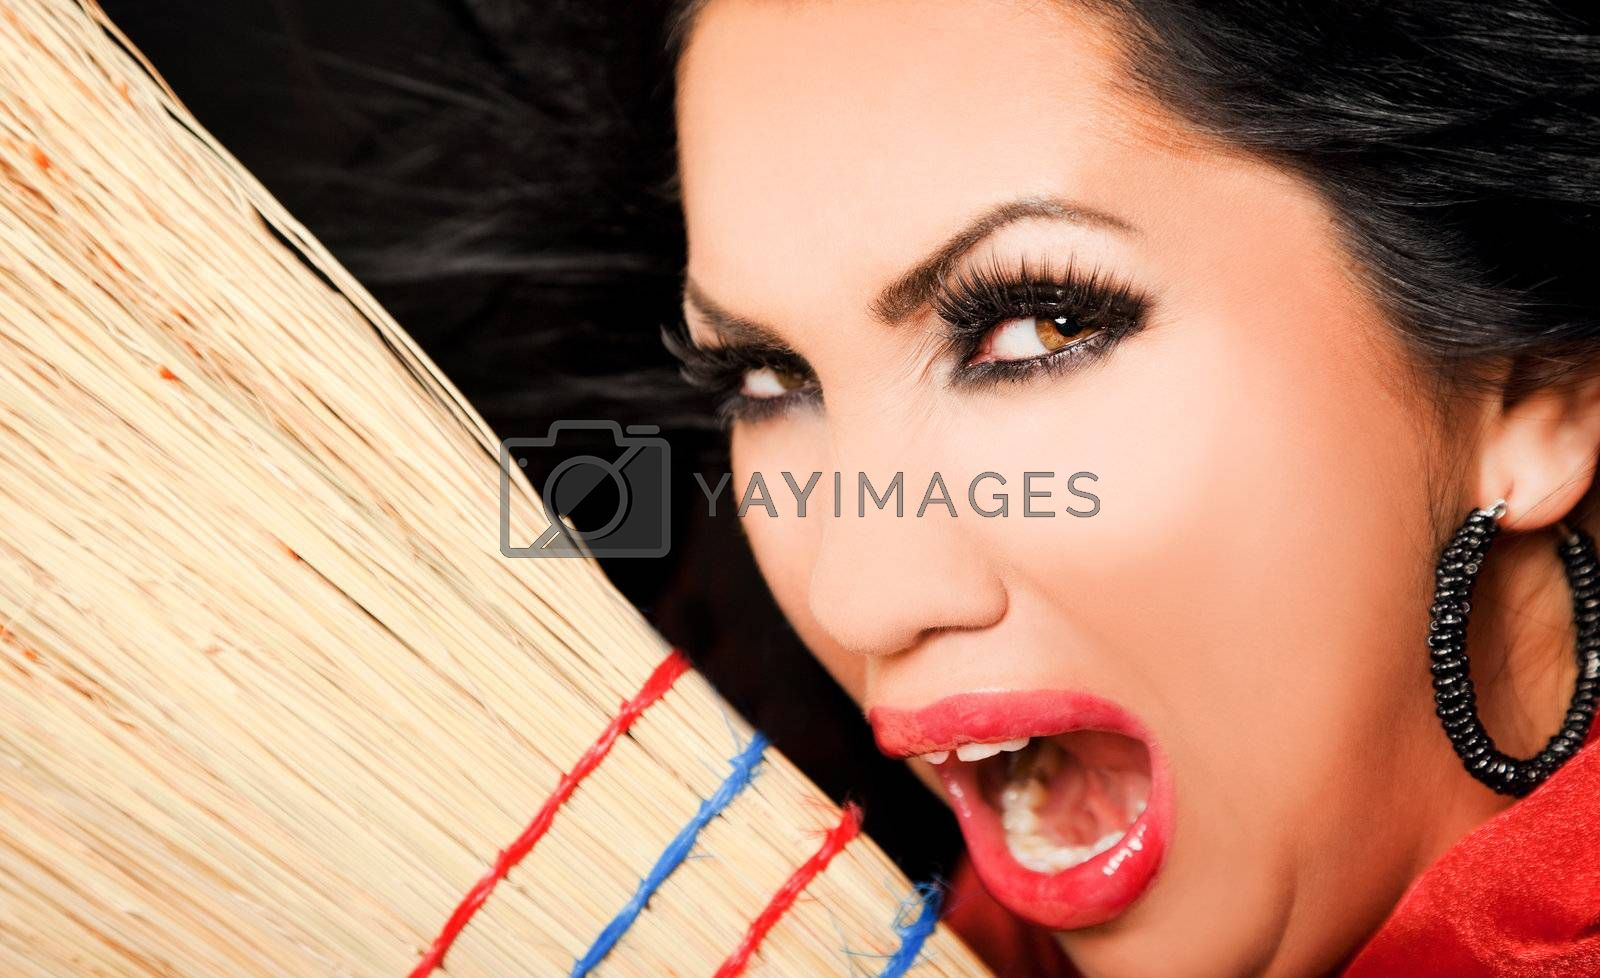 Close-up of female face looking evul at camera, holding a broom screaming